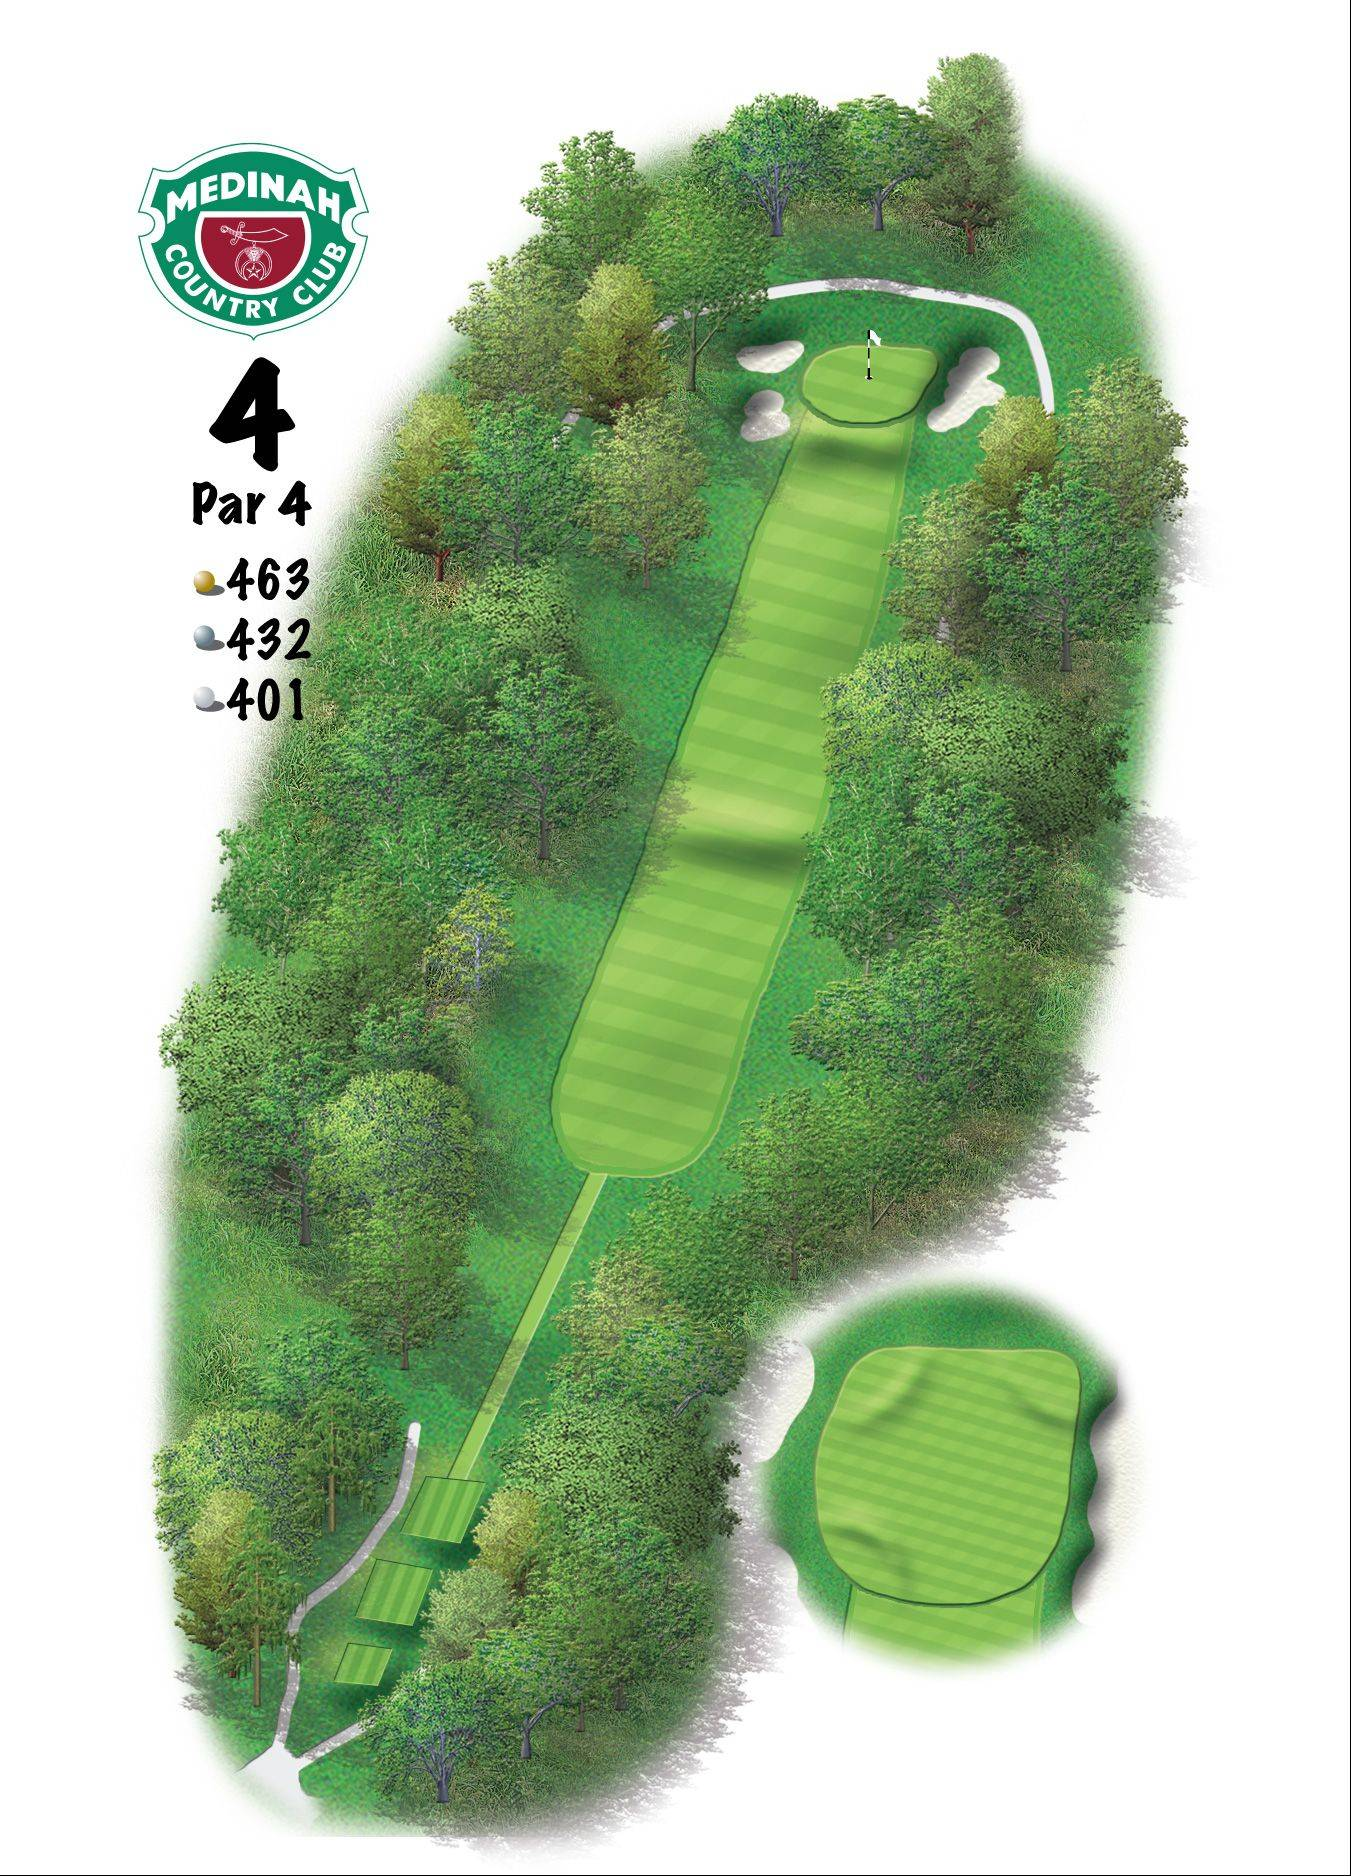 Hole 4 of the Ryder Cup course at Medinah. 463 yards/423 meters, Par-4, Favor the right side of this pitched fairway, as any balls hit down the left side will likely find the rough. Approach shots to the green always play a club longer because of the severe elevation change from fairway-to-green.